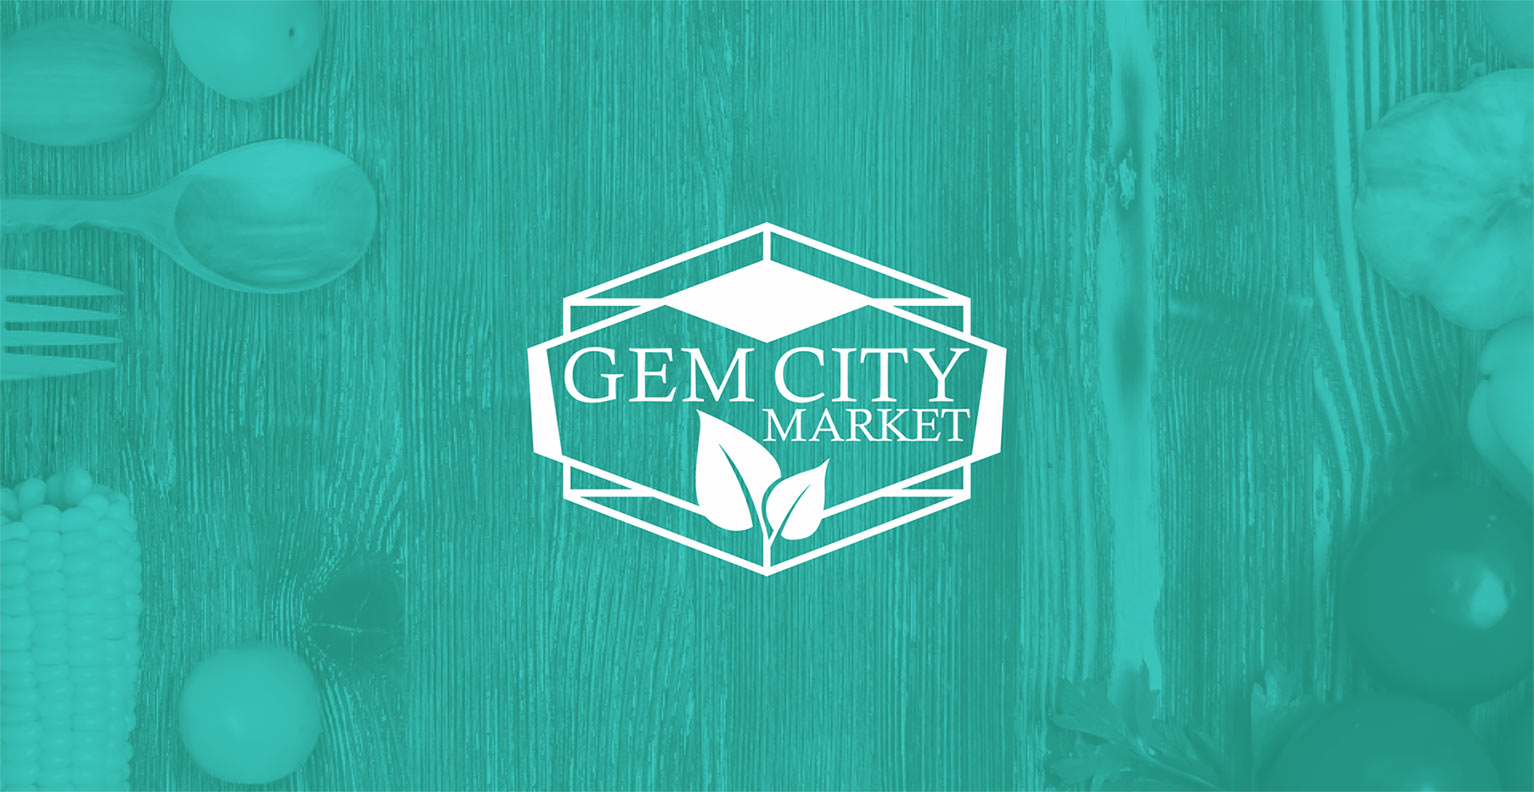 Project - Gem City Market